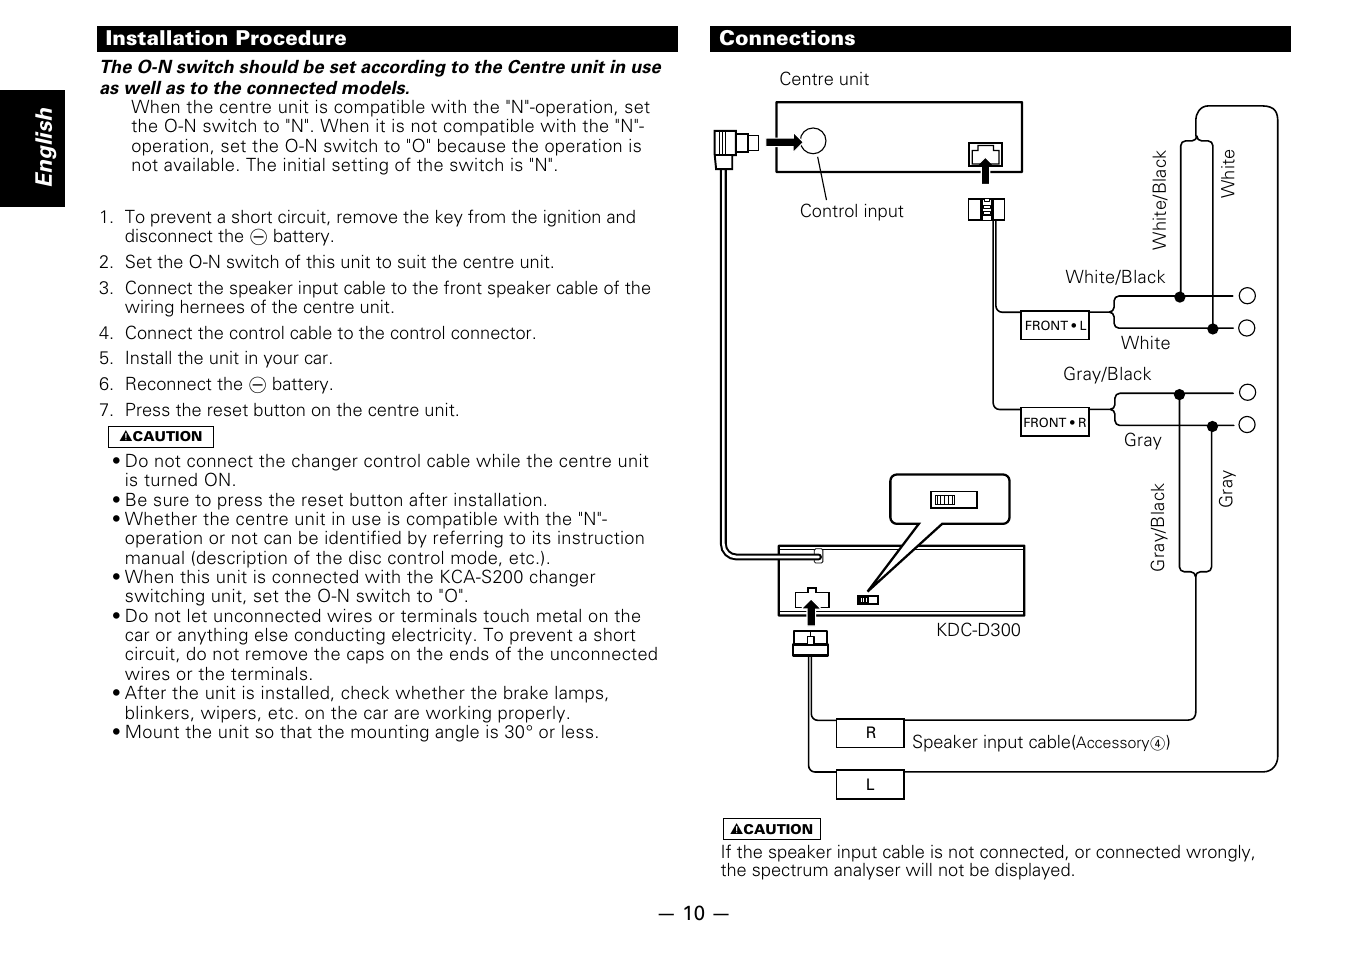 Wiring Diagram Kdc D300 Cd Player Libraries Kenwood Model X759 Installation Procedure Connections English Userinstallation